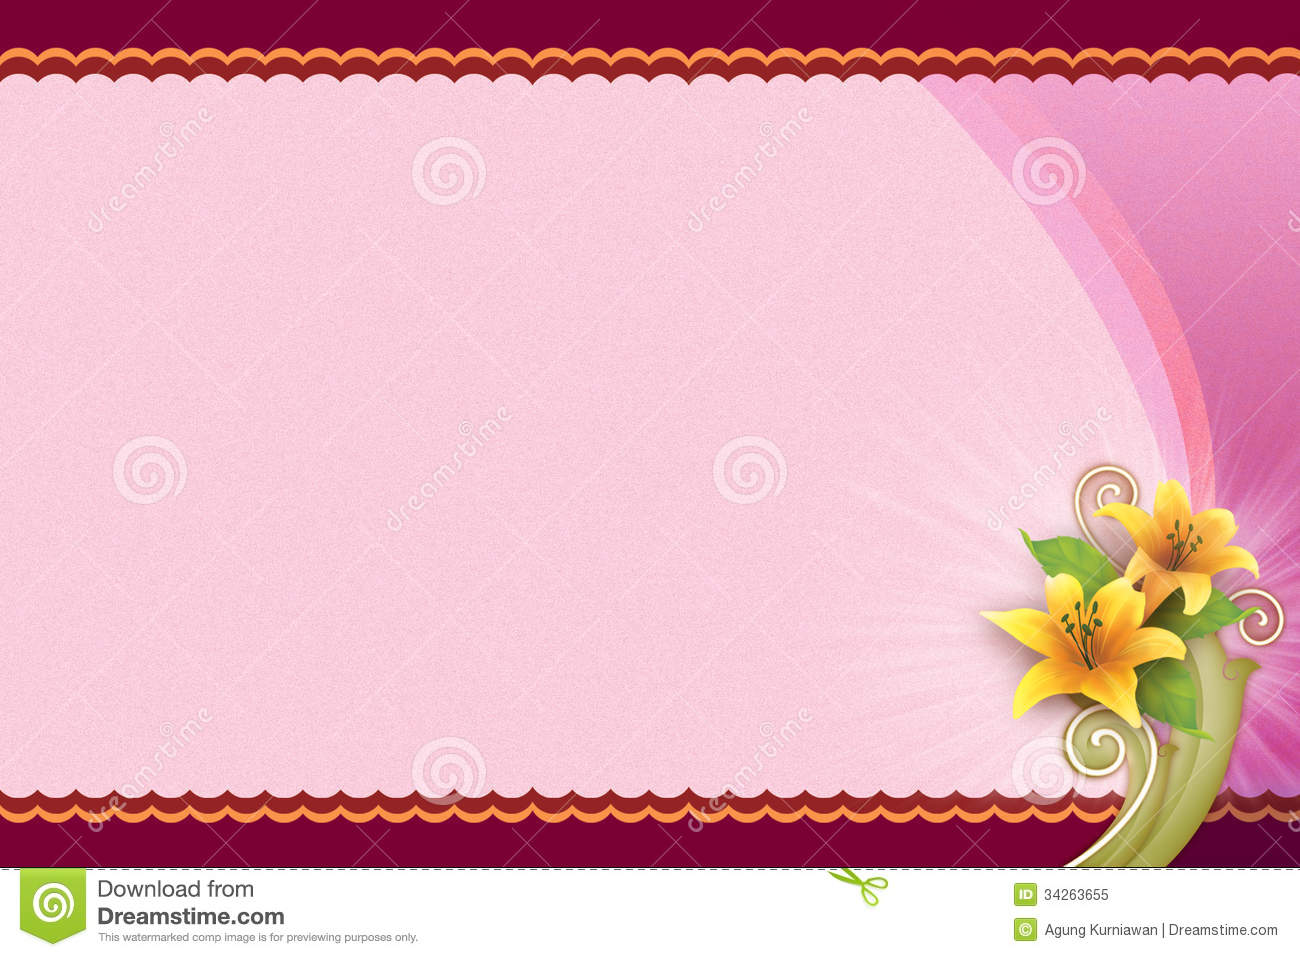 birthday card landscape ; pink-background-flower-blank-card-orientation-image-landscape-can-be-used-many-purpose-example-34263655